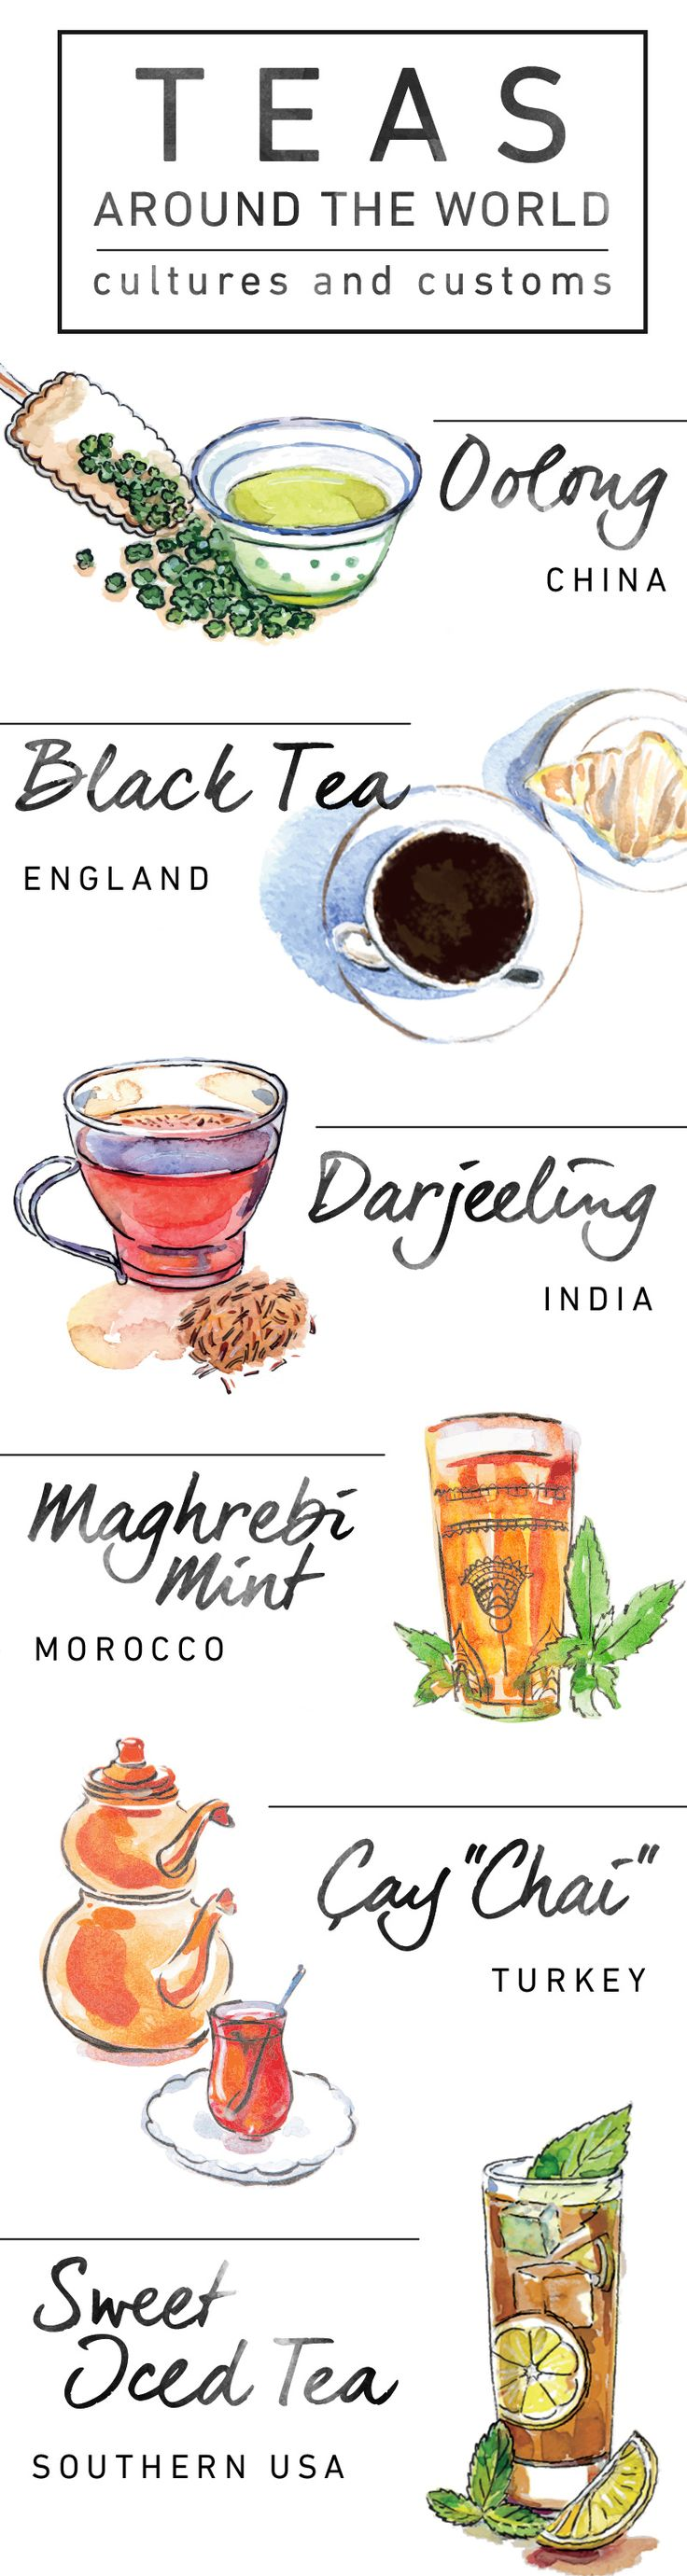 Tea from around the world ~ Did you know that tea is second only to water as the most common beverage in the world?